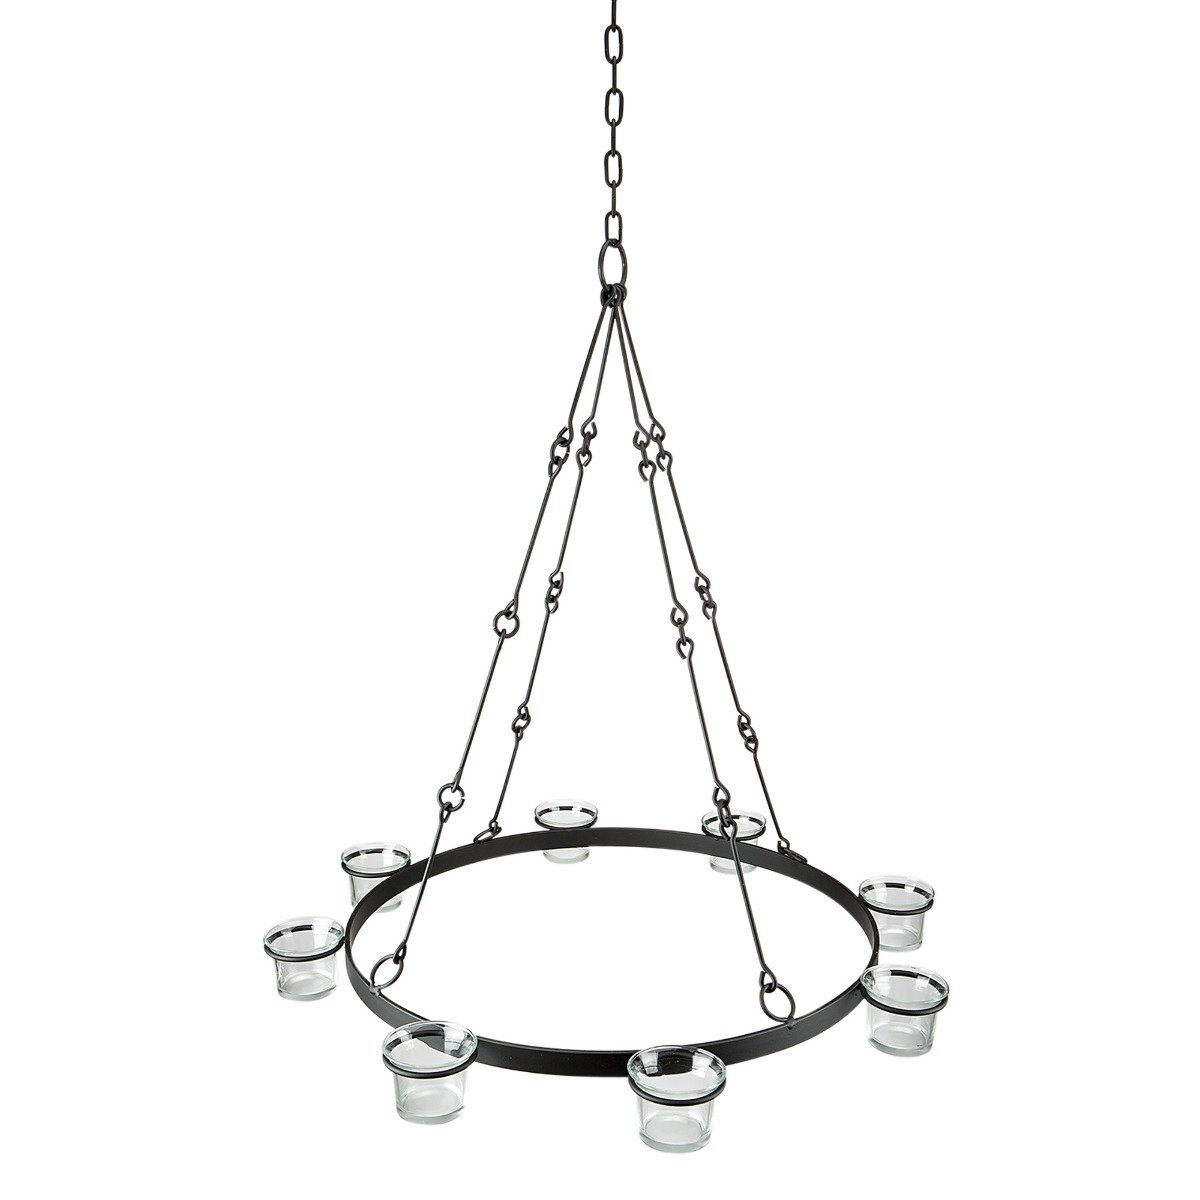 Sunjoy Regency Gazebo Candelabra Outdoor Chandelier Lighting